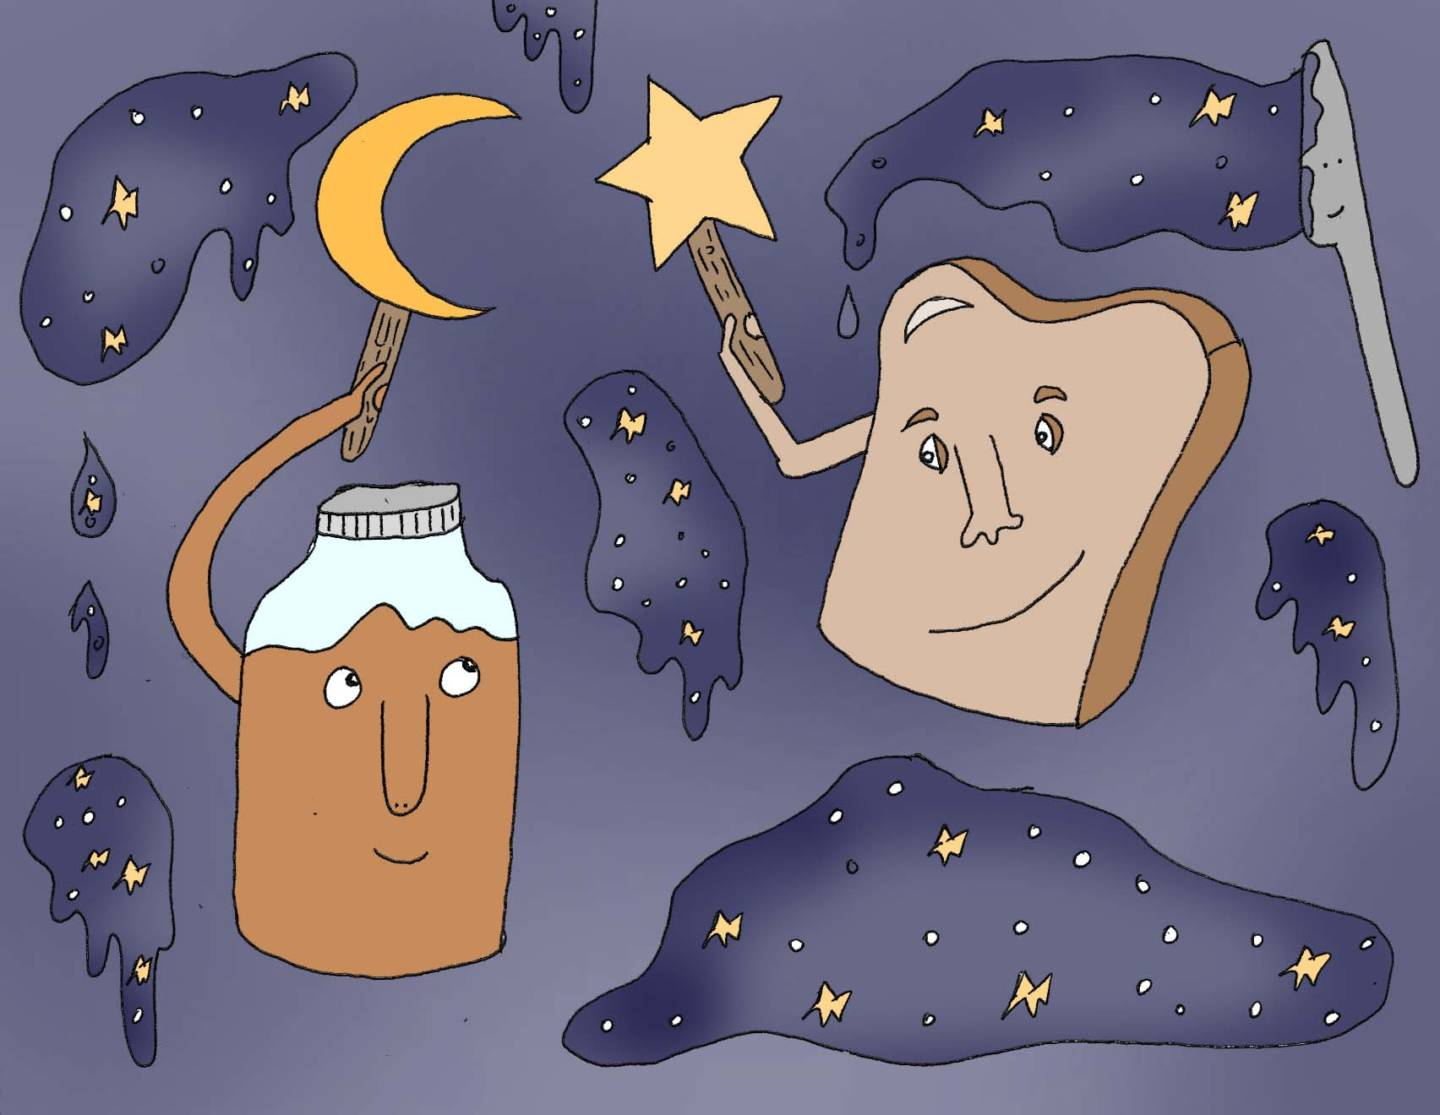 Nut butter and toast enjoy fulfilling your evening snack dreams.